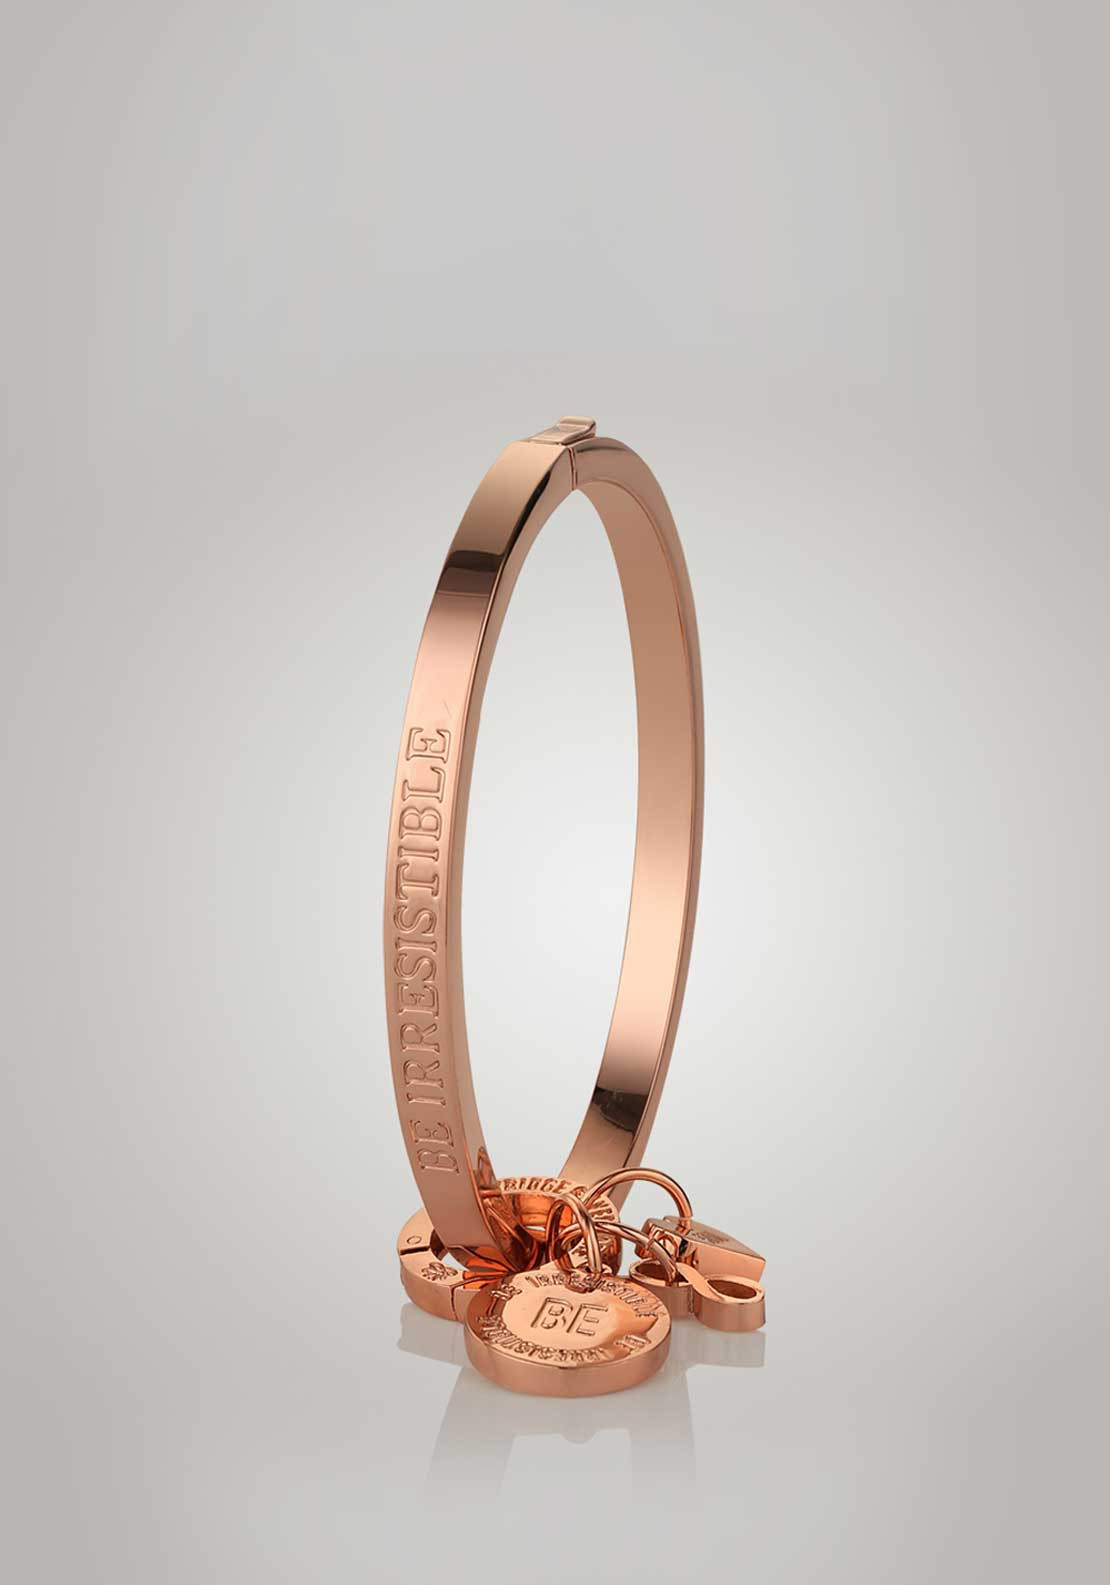 Newbridge Silverware Ti Amo Collection Be Irresistible Bangle, Rose Gold